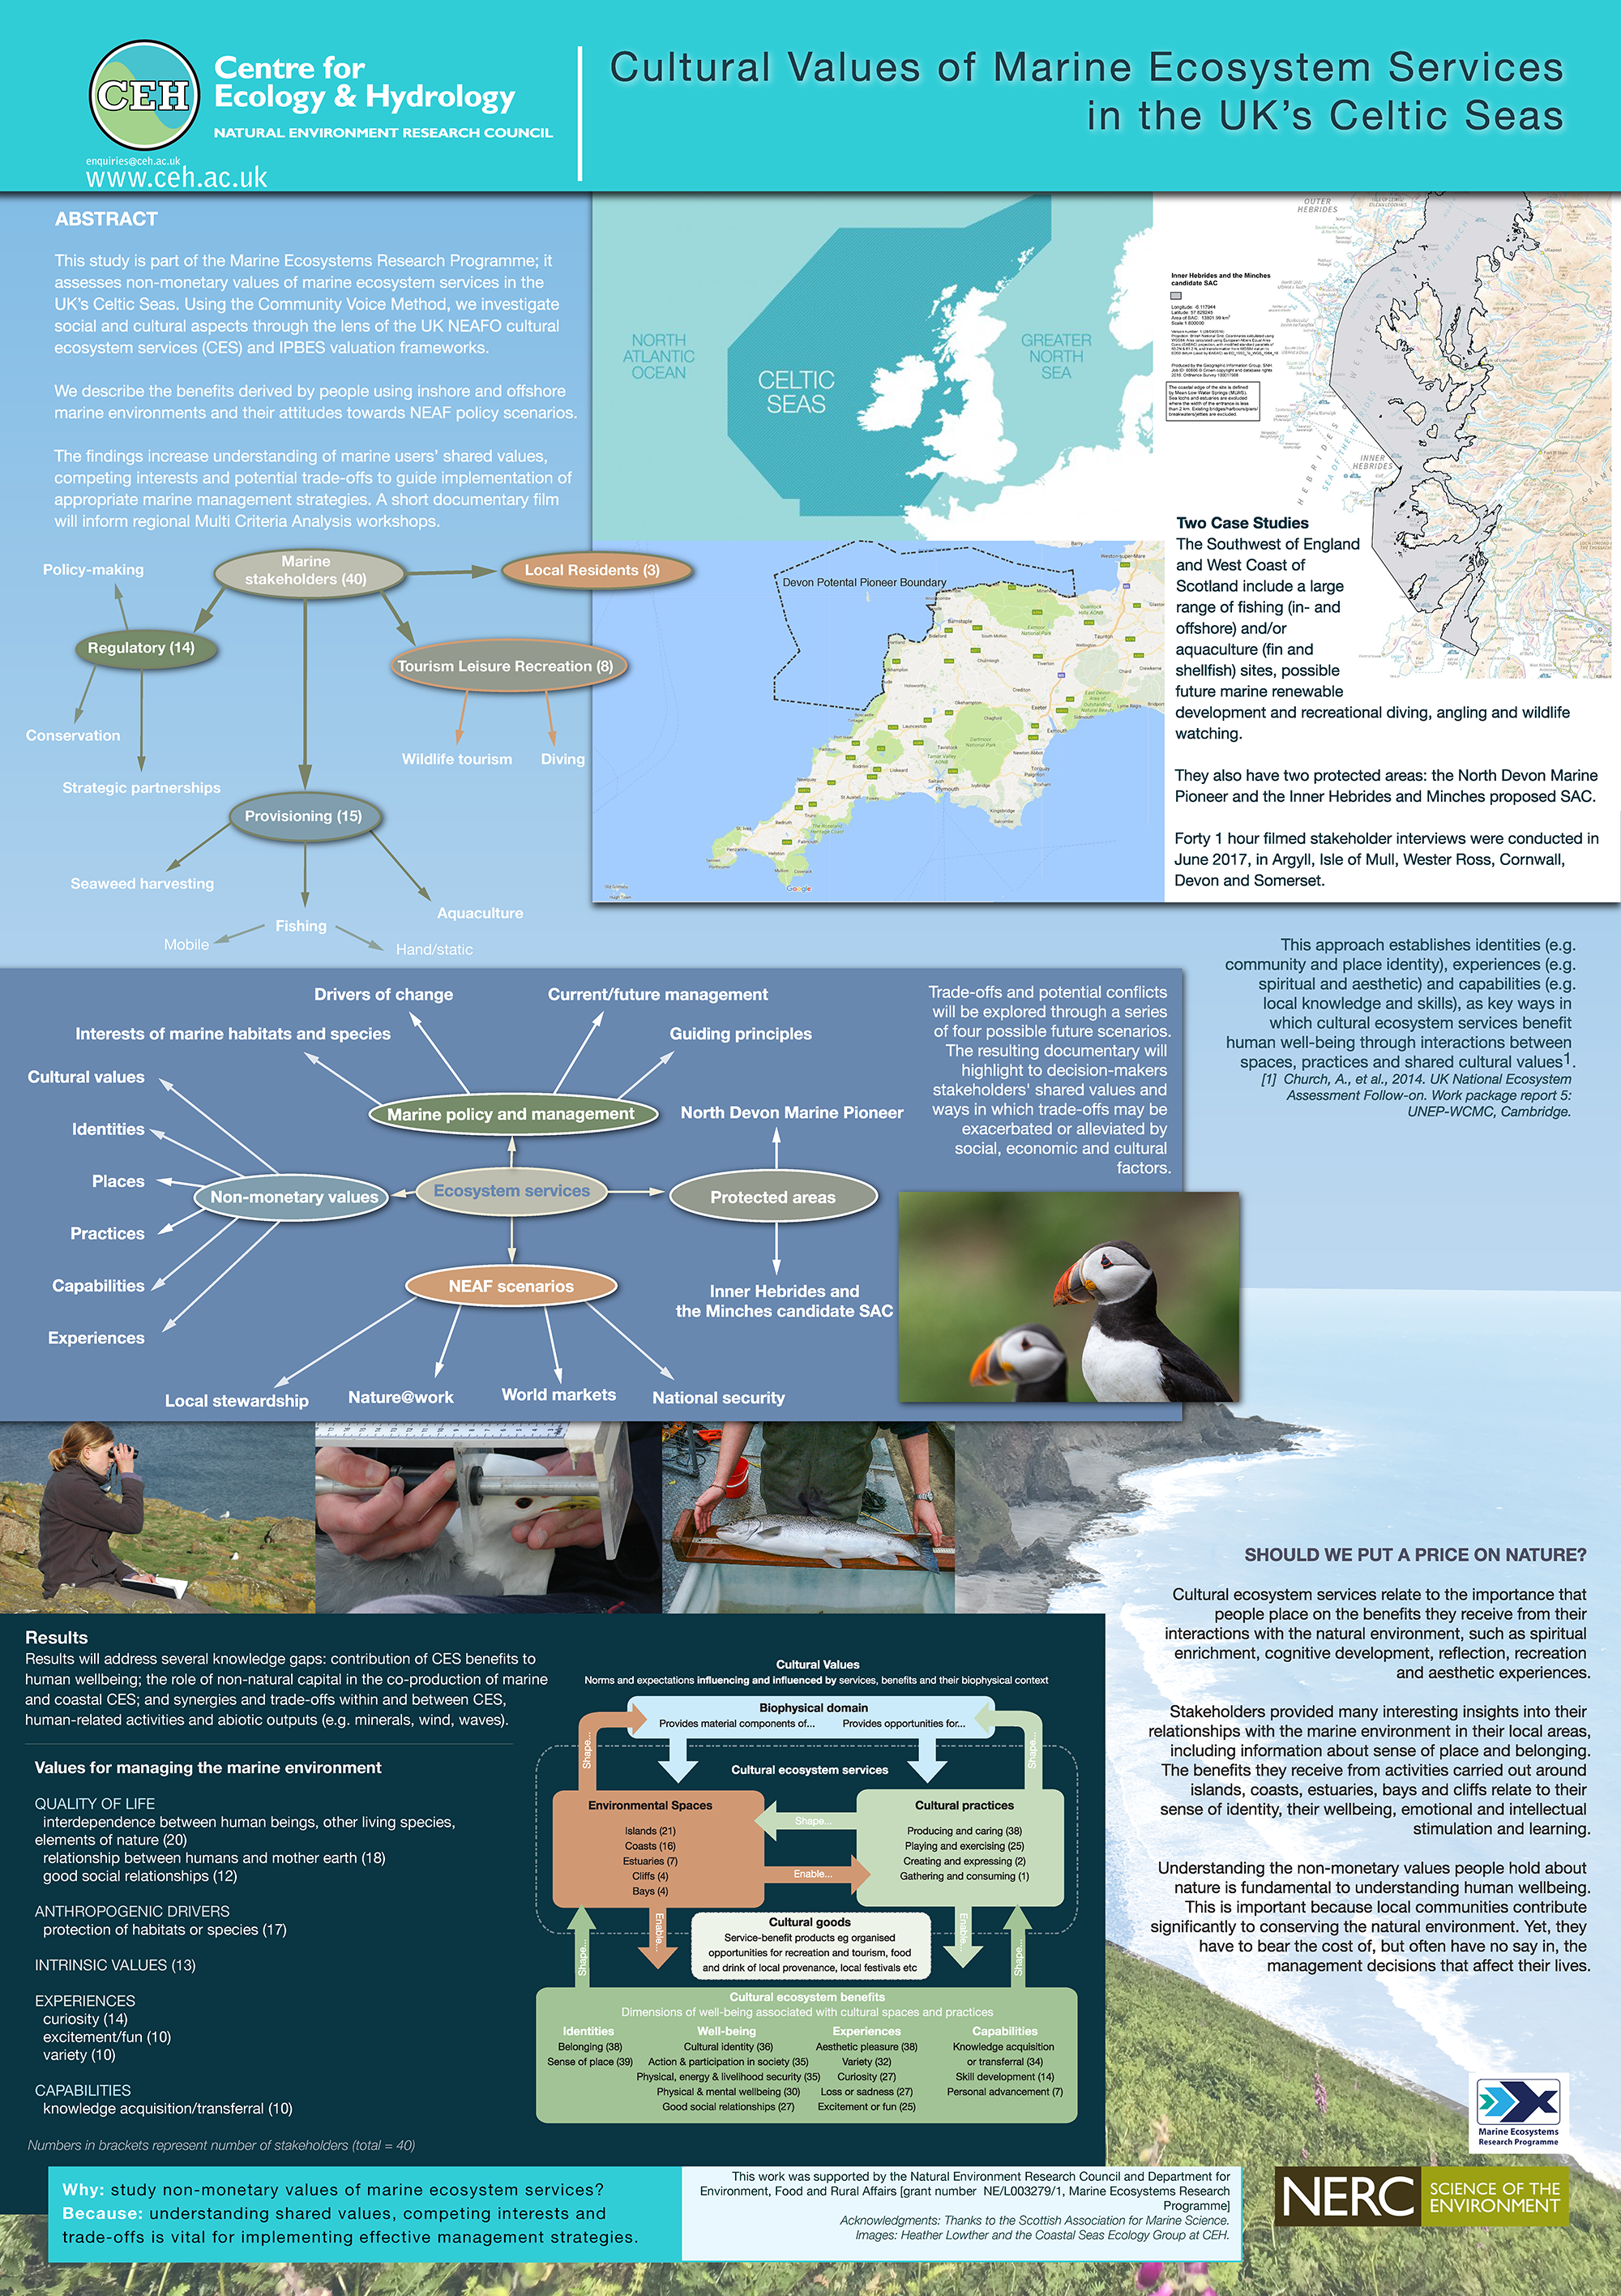 Poster outlining Cultural values of marine ecosystem services in the UK's Celtic Seas